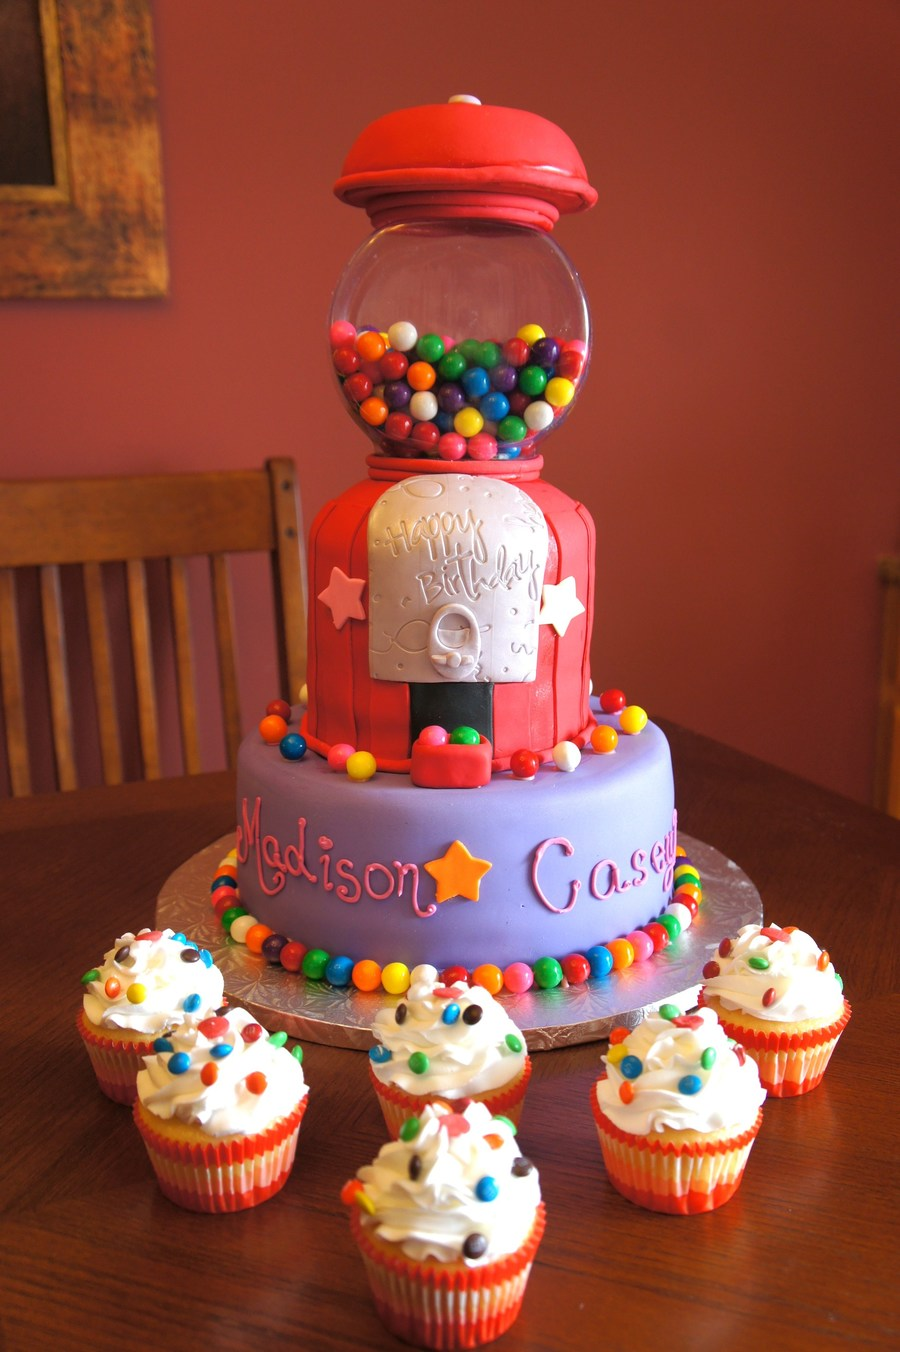 Gumball Machine Cake Both Tiers Are Yellow Cake With Chocolate Buttercream Filling on Cake Central